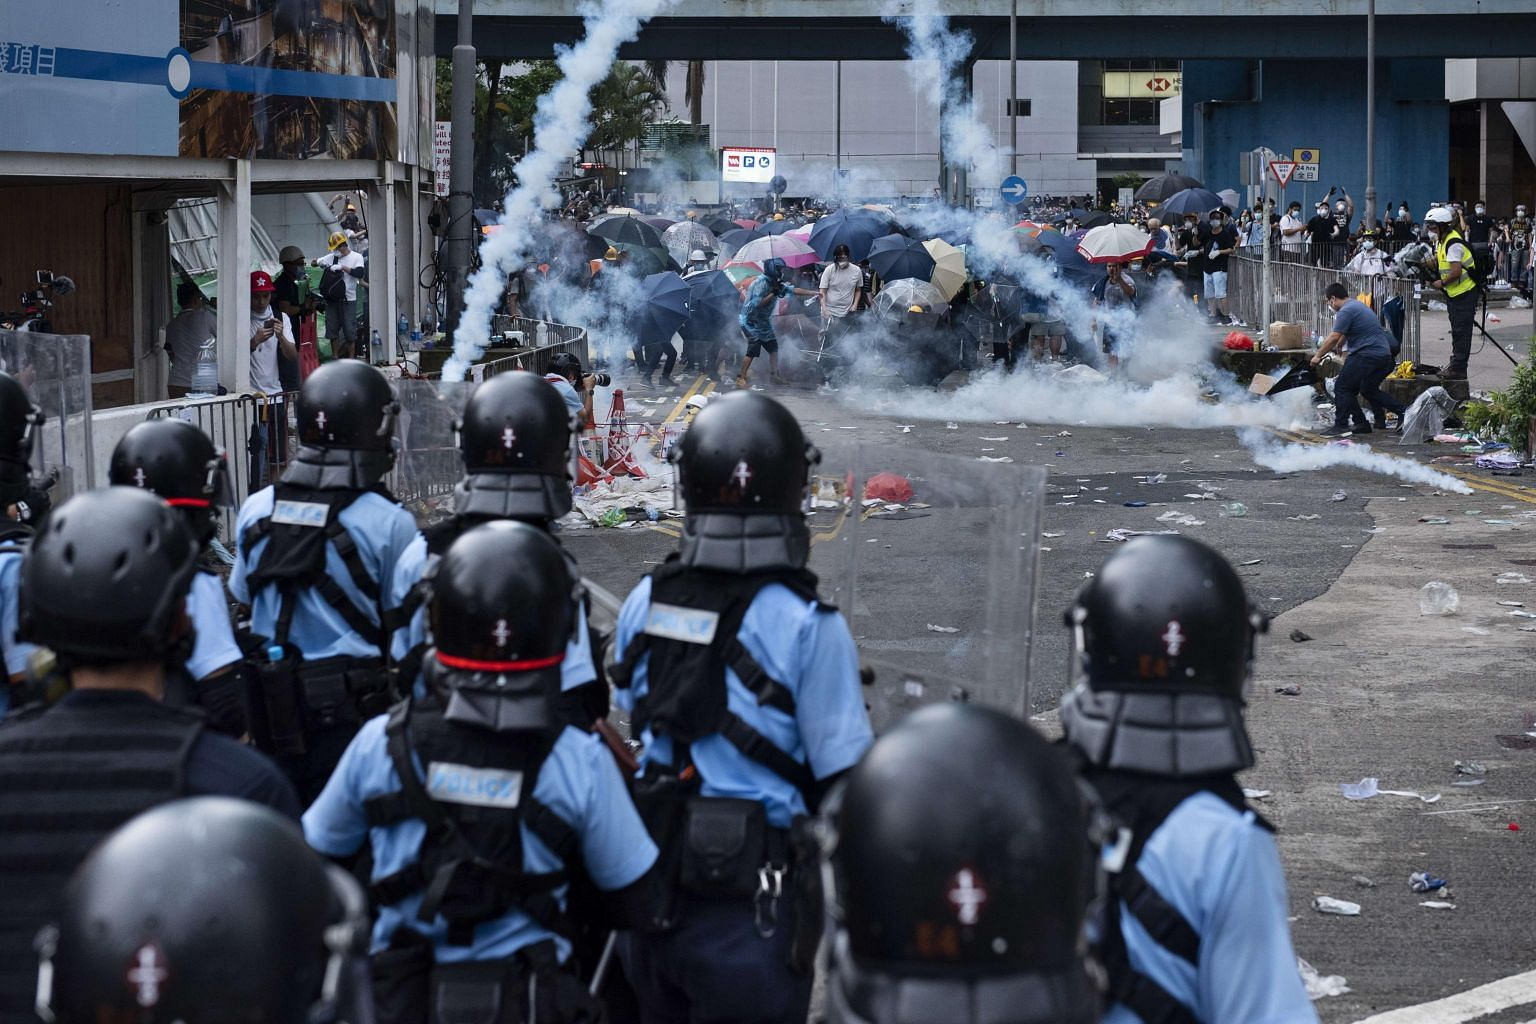 Hong Kong leader Carrie Lam calls extradition law protests